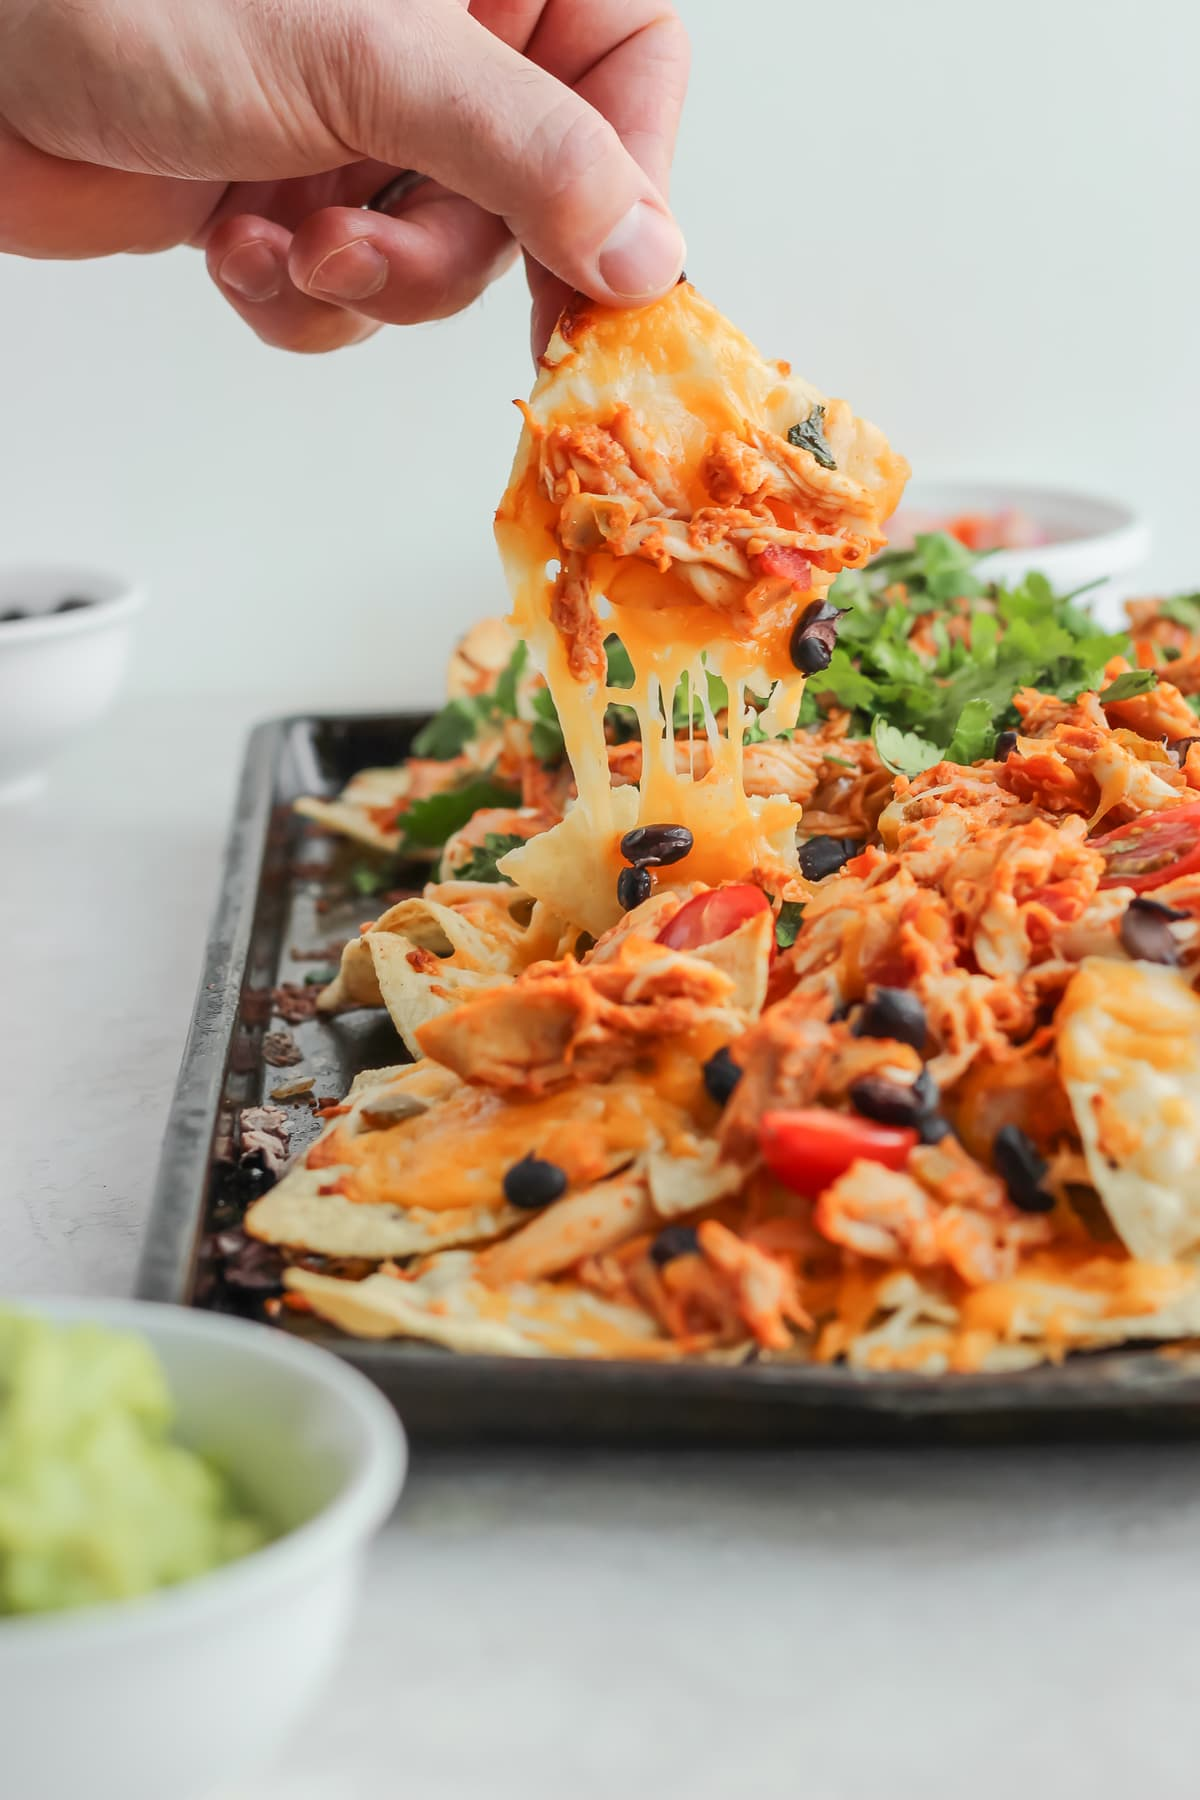 picking up a nacho from a sheet pan